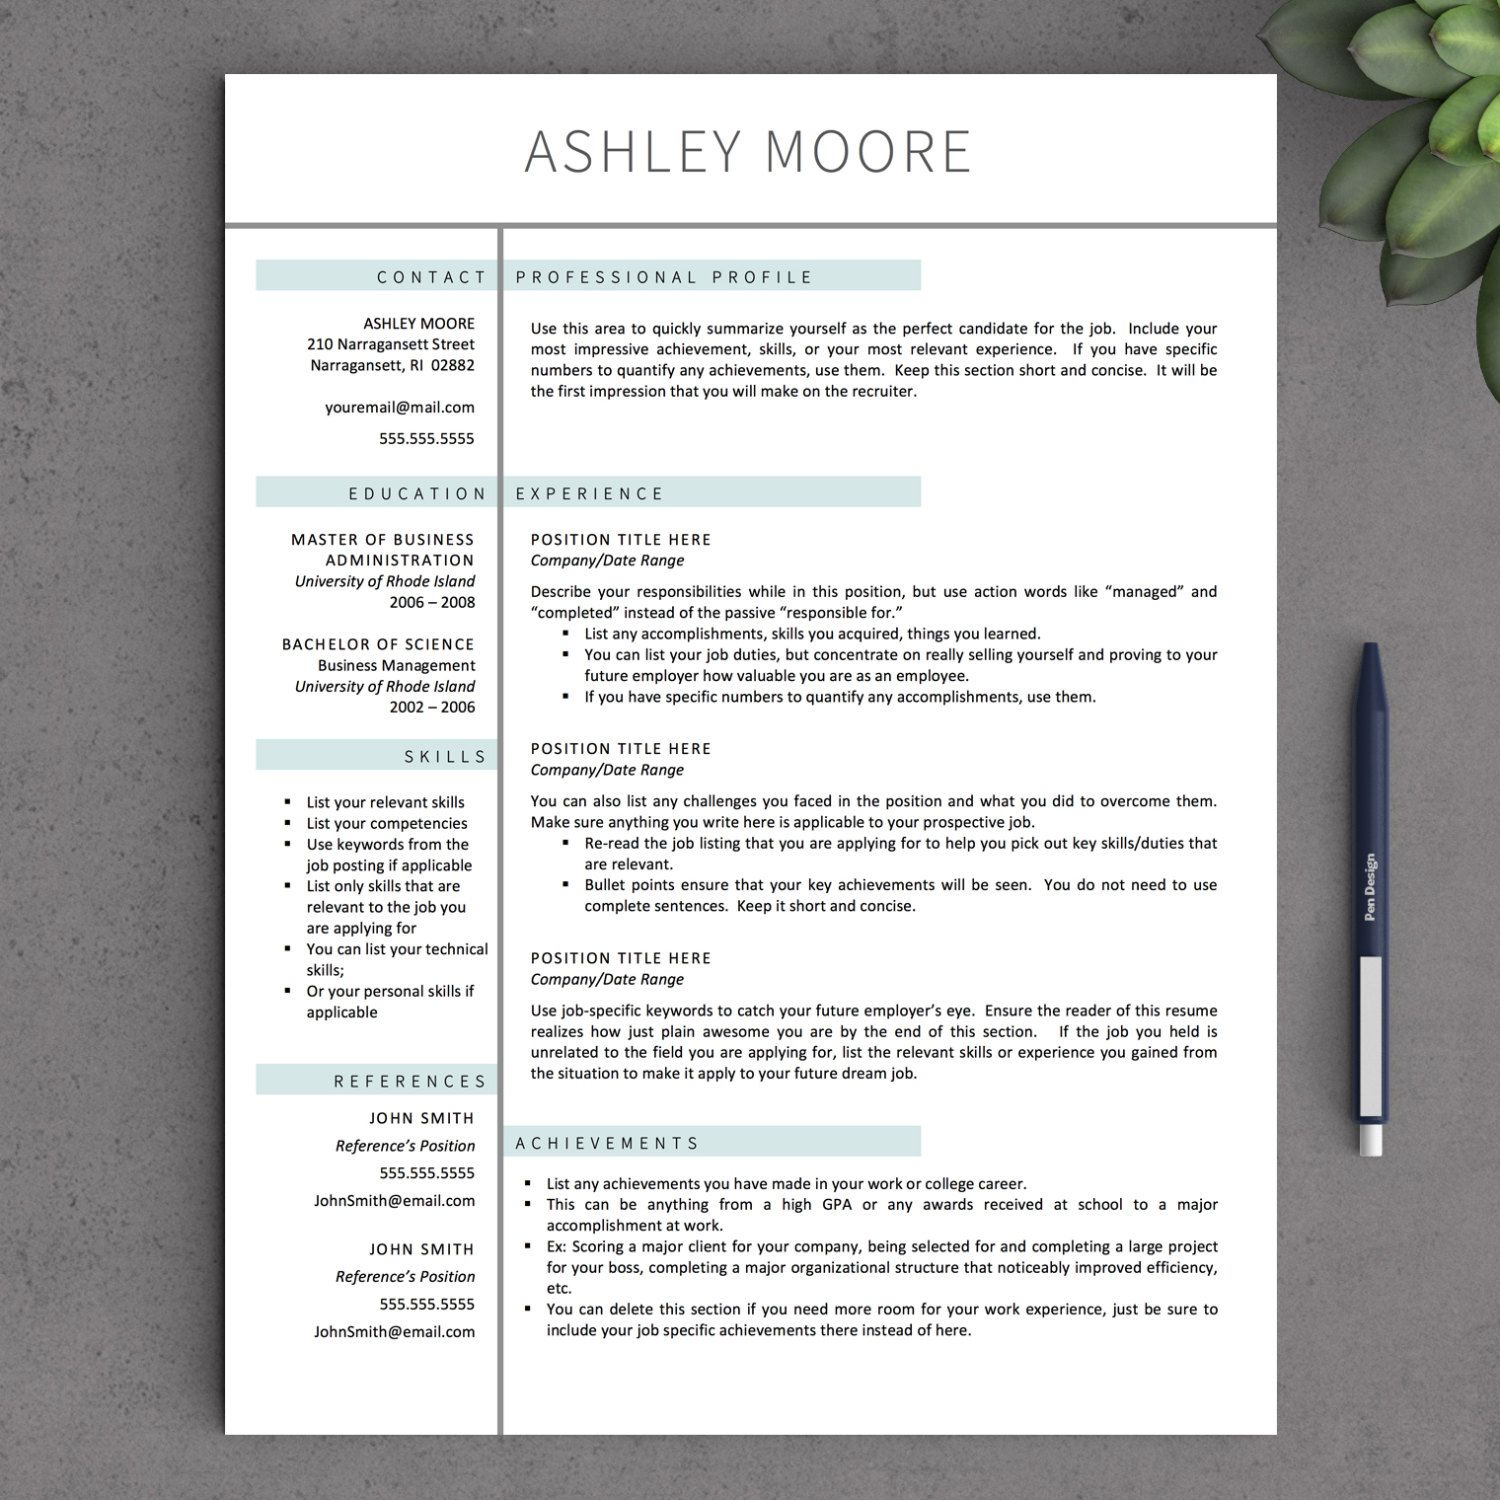 Resume Pages Resume Templates Free Mac apple pages resume template download download